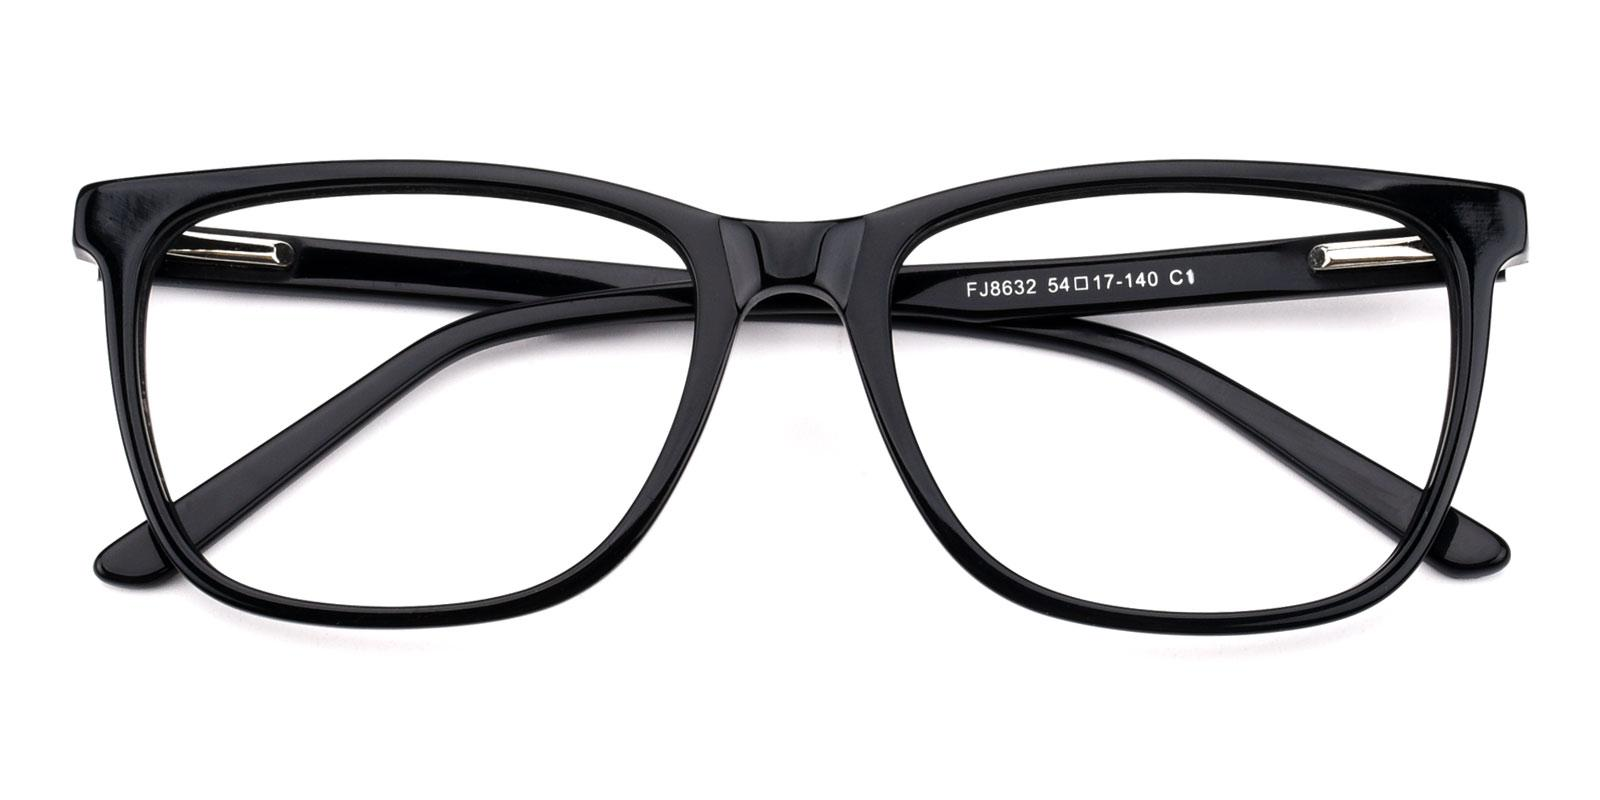 Genter-Black-Square-Acetate-Eyeglasses-detail